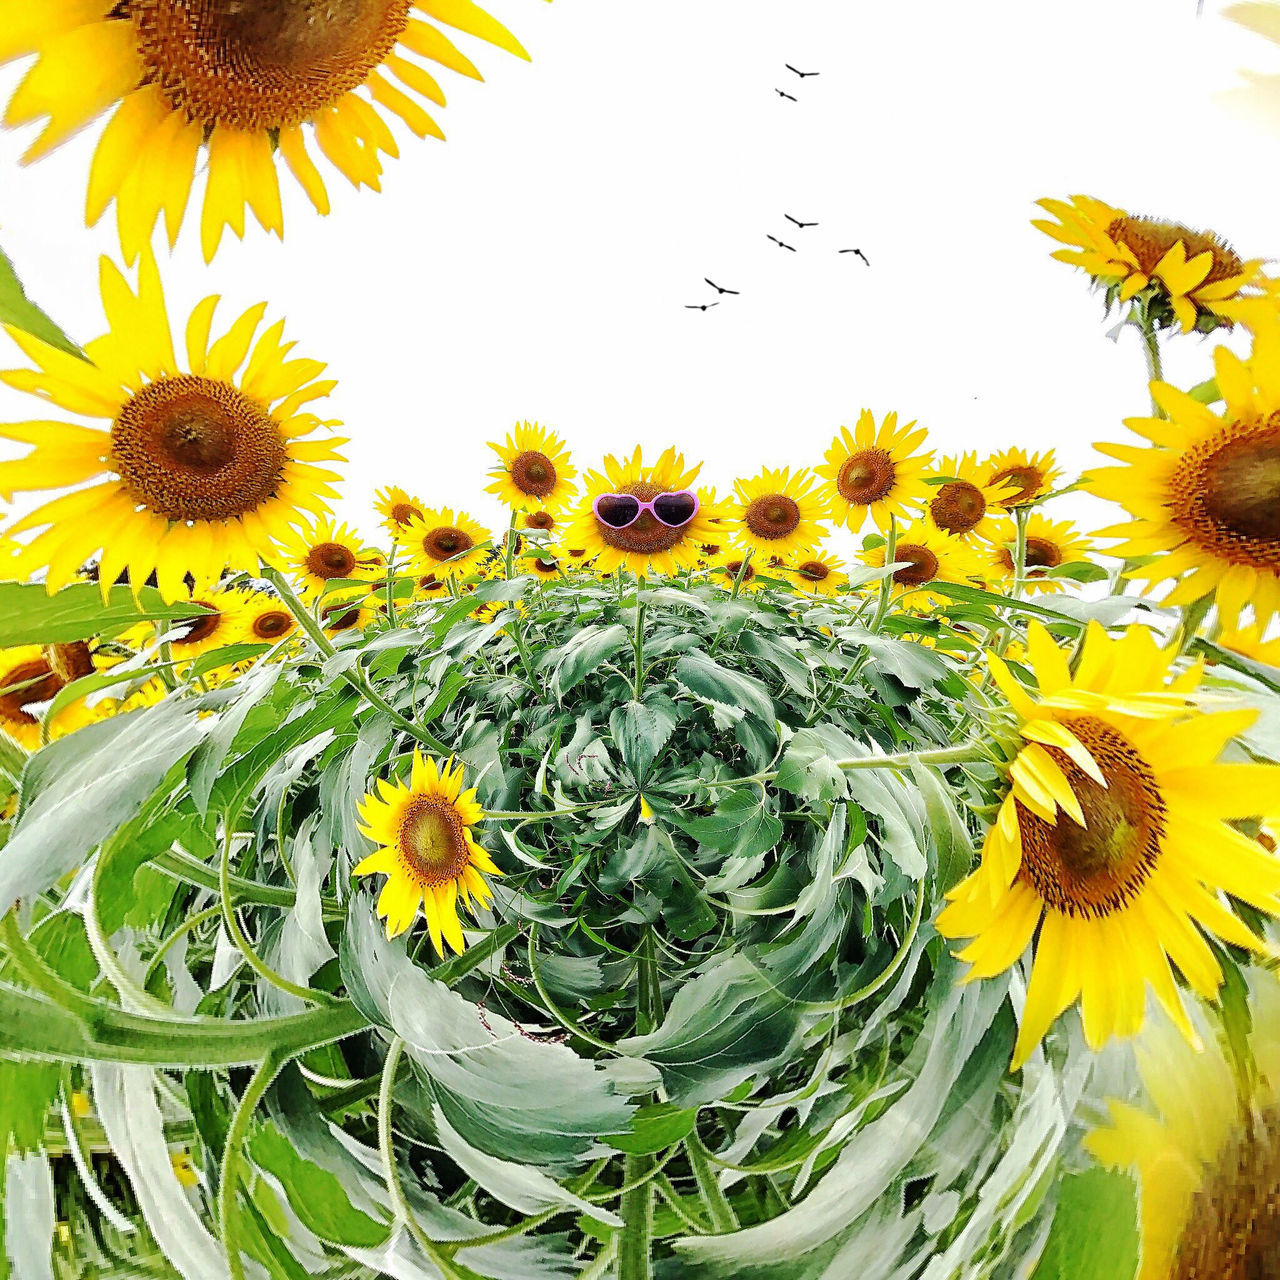 flower, yellow, nature, beauty in nature, growth, petal, plant, freshness, fragility, sunflower, flower head, uncultivated, no people, close-up, outdoors, day, animal themes, blooming